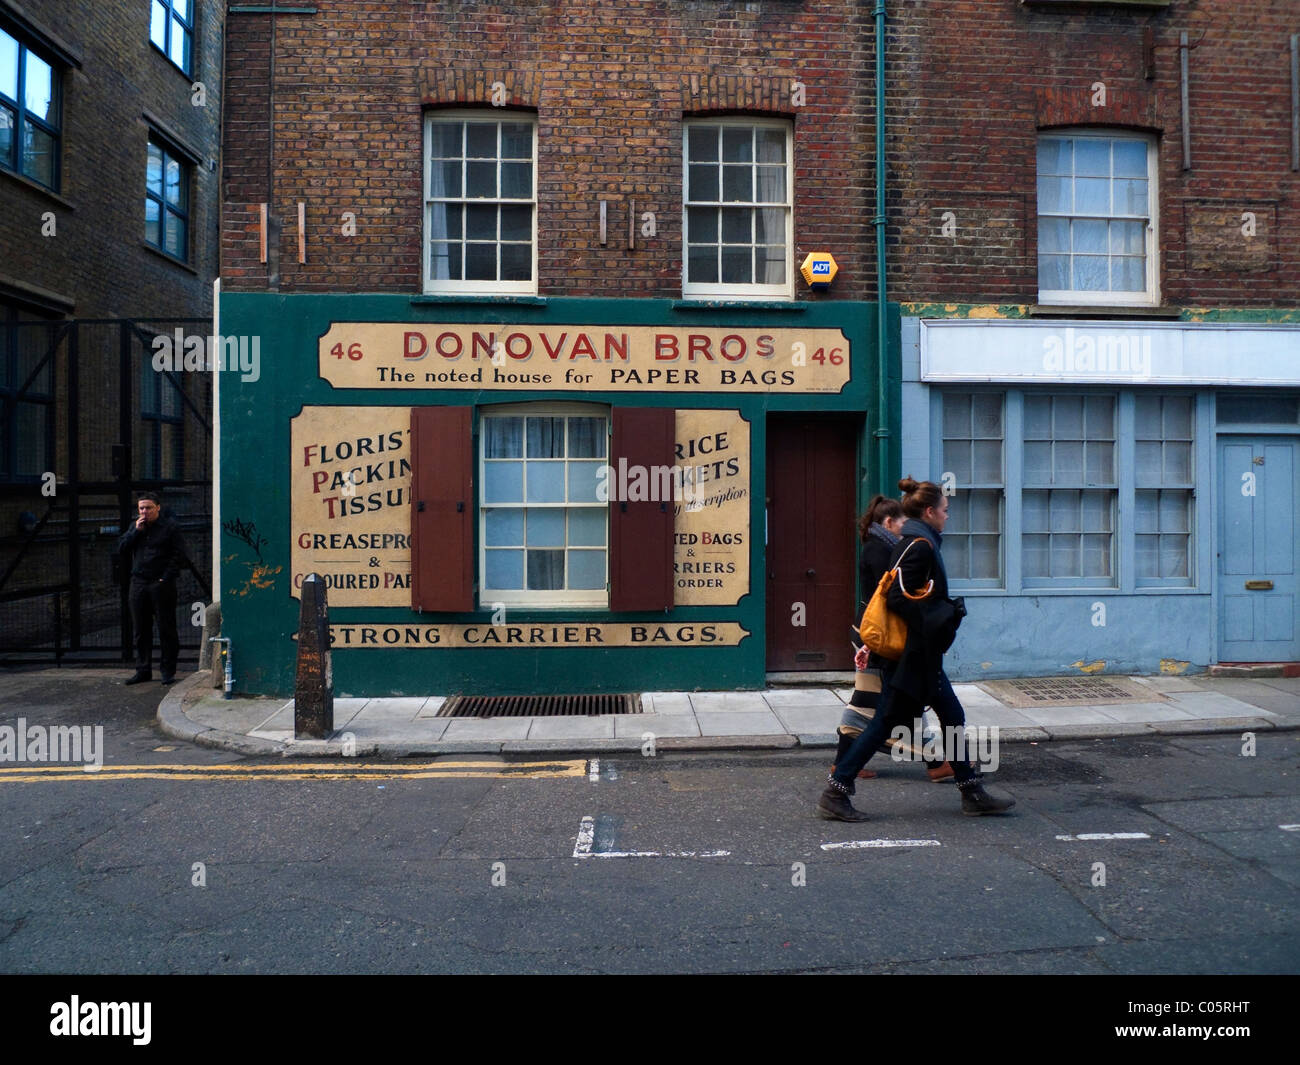 Two young women walking past Donovan Bros Paper Bag shop in Spitalfields East London UK KATHY DEWITT - Stock Image